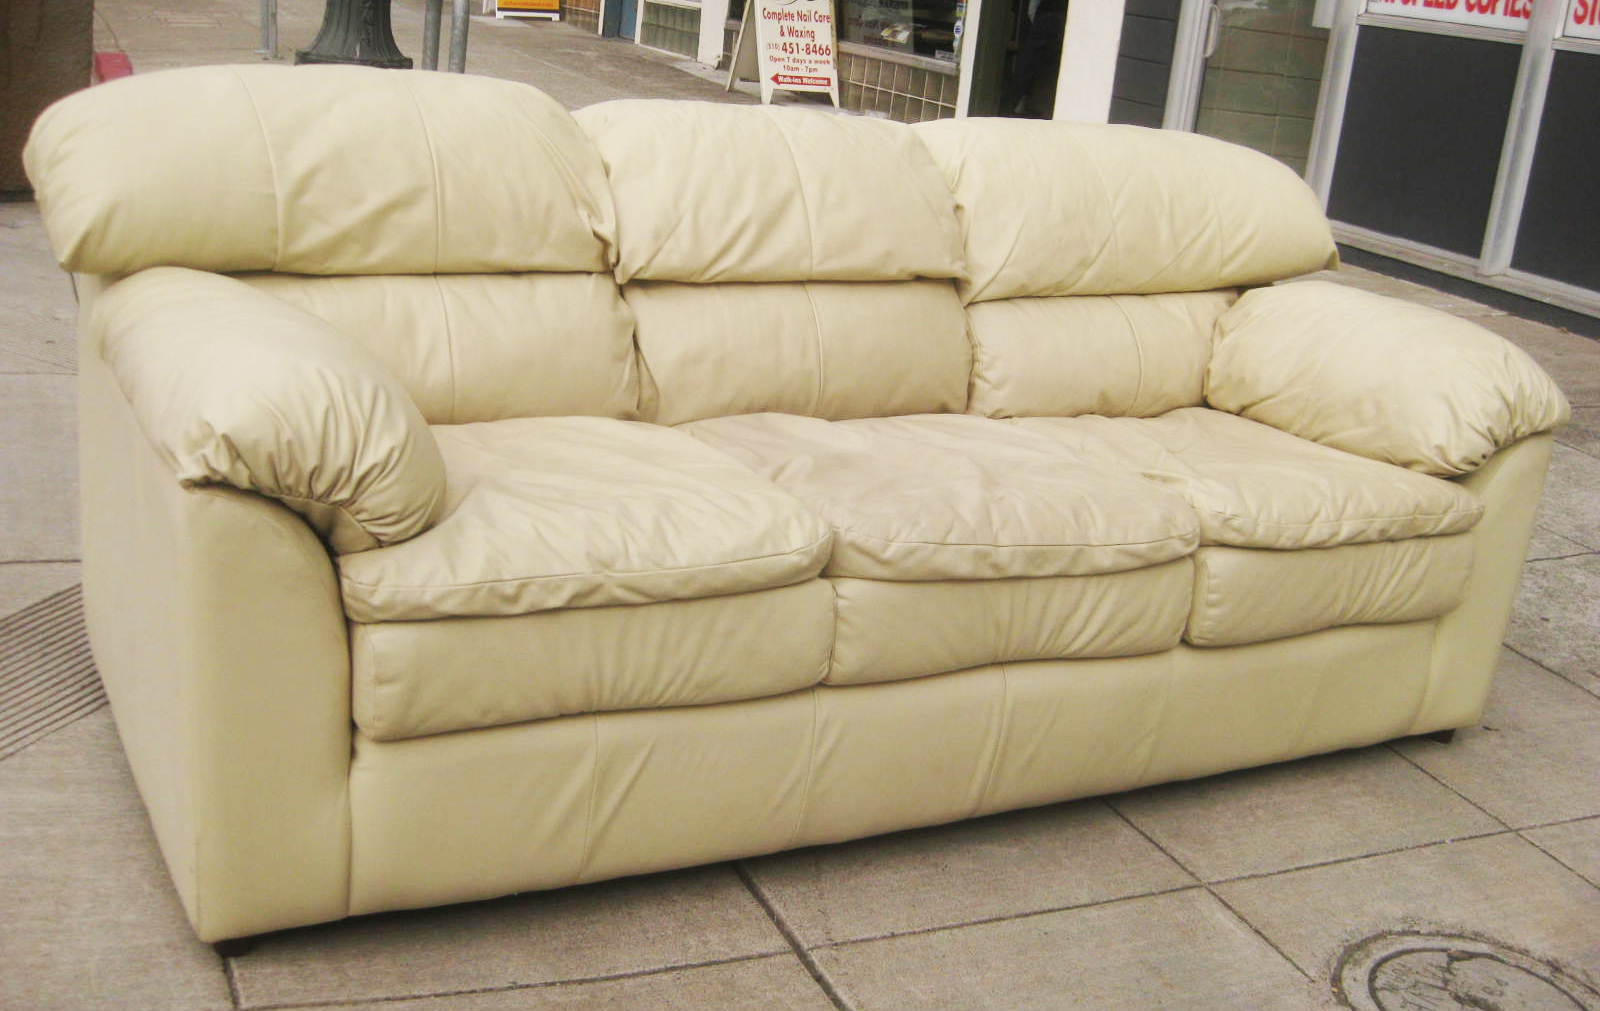 SOLD   Beige Leather Sofa   $125